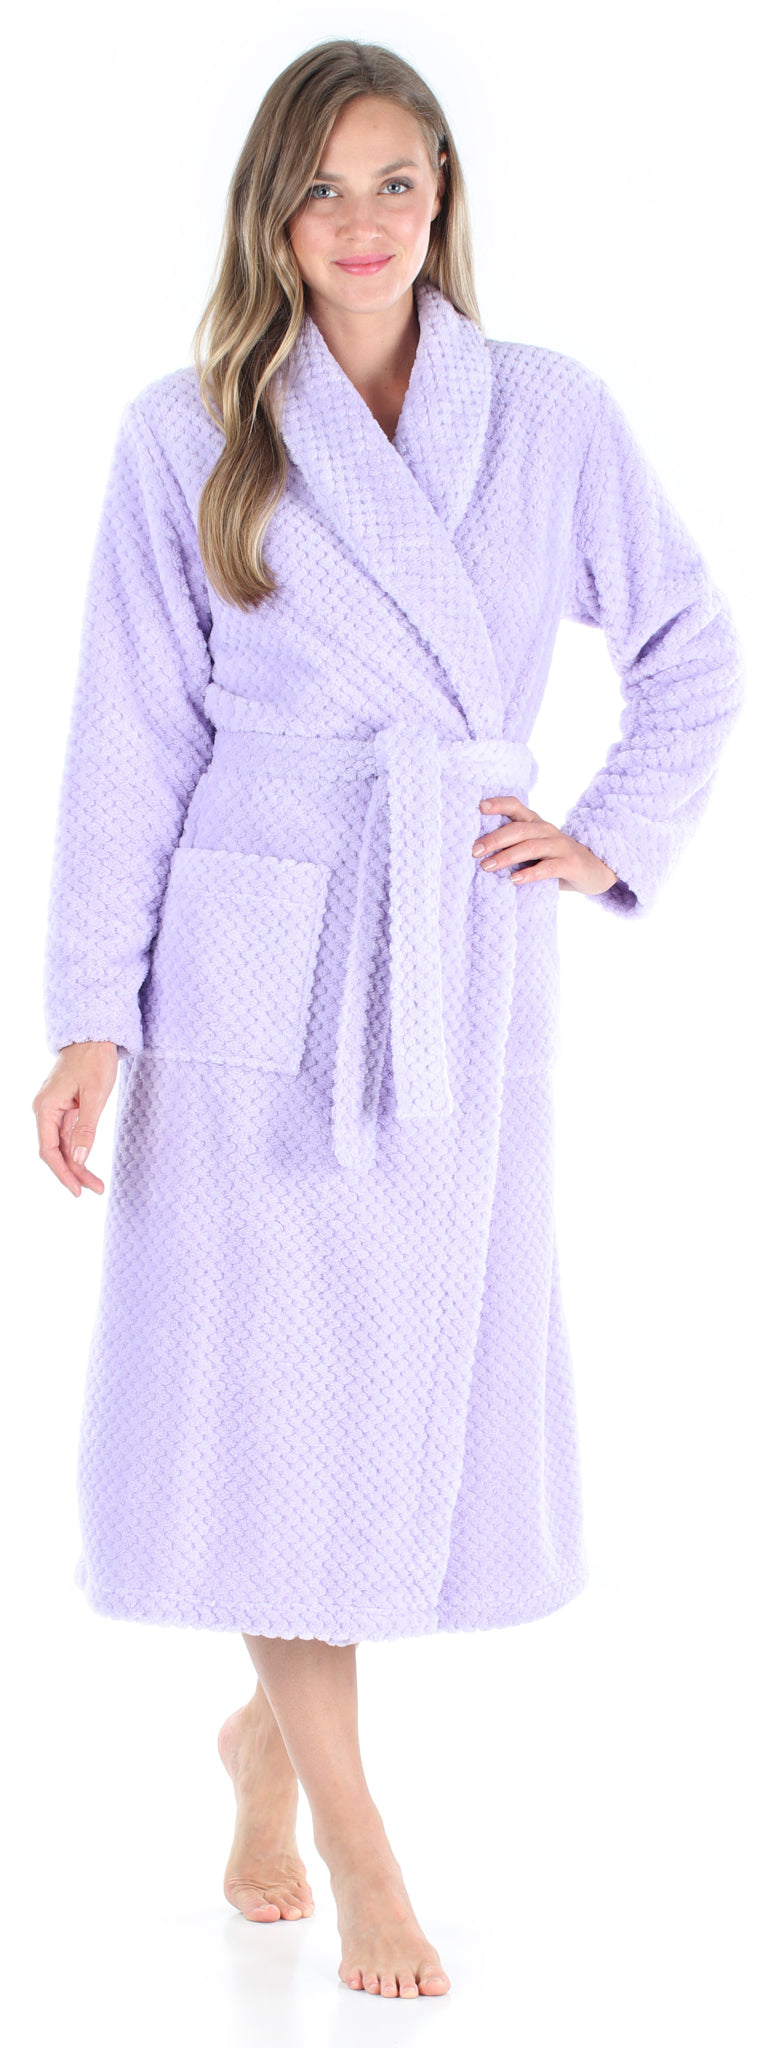 Women's Plush Fleece Robe Jacquard Long Sleeve Bathrobe